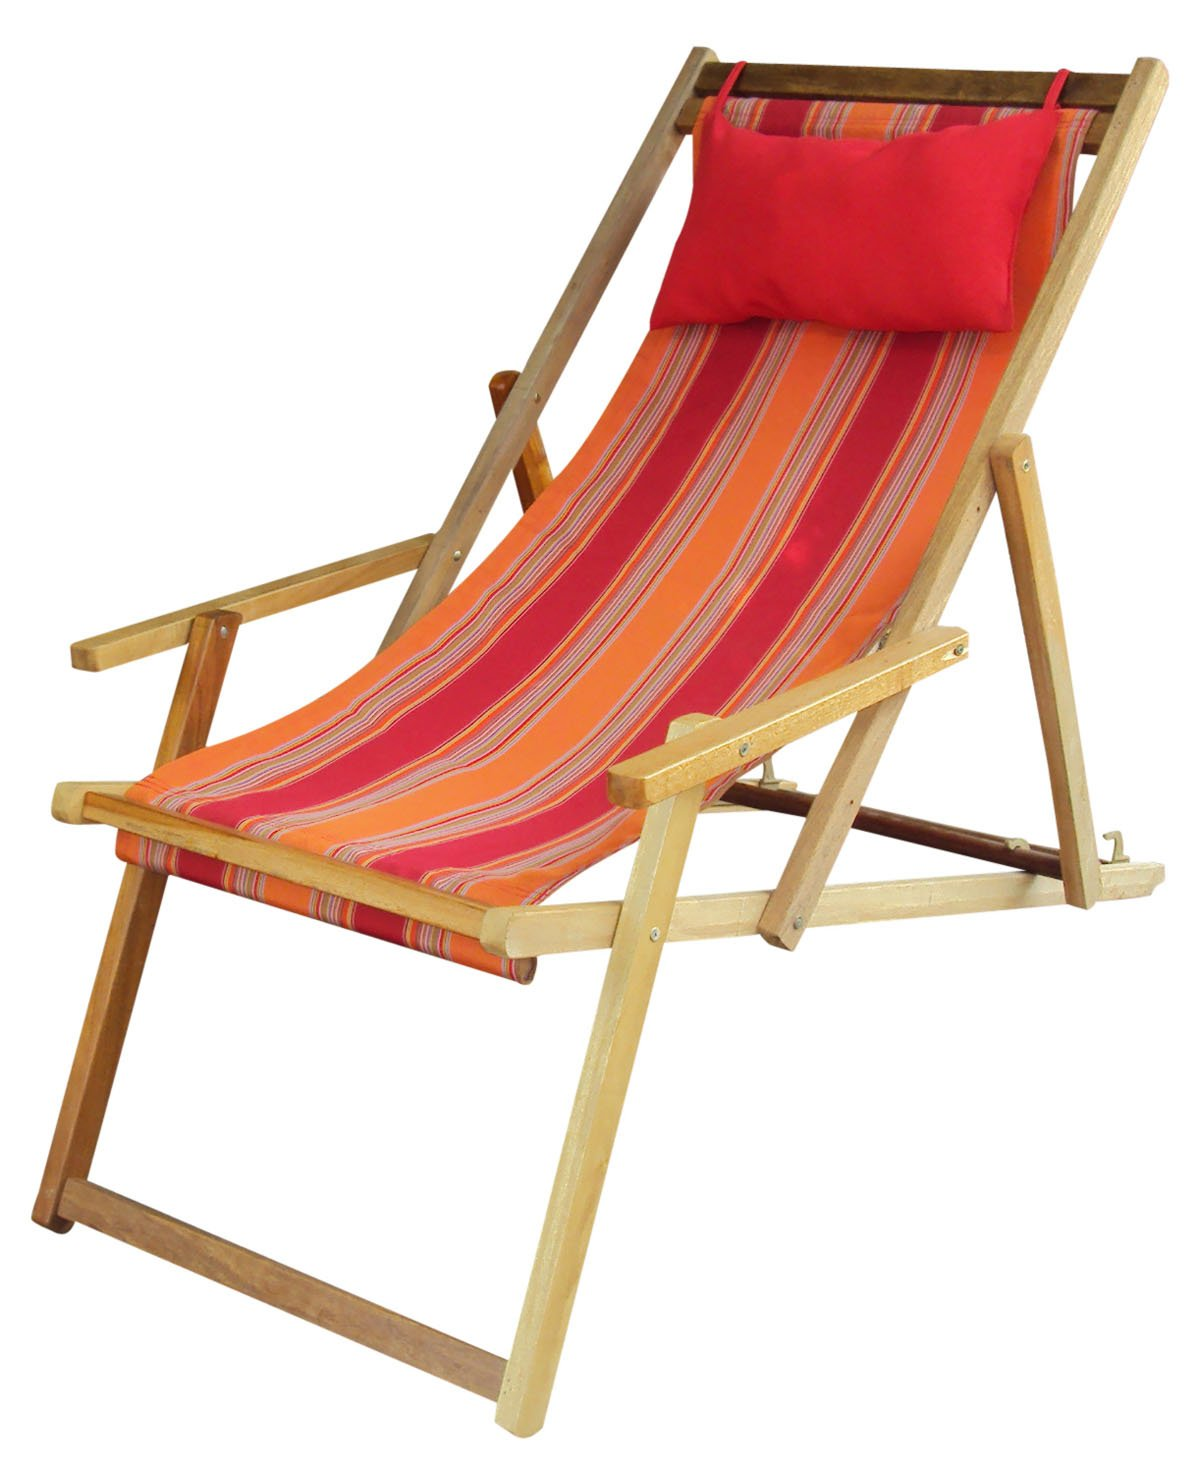 Hangit Portable Polyester Fabric Wooden Chair Furniture For Garden Living Room